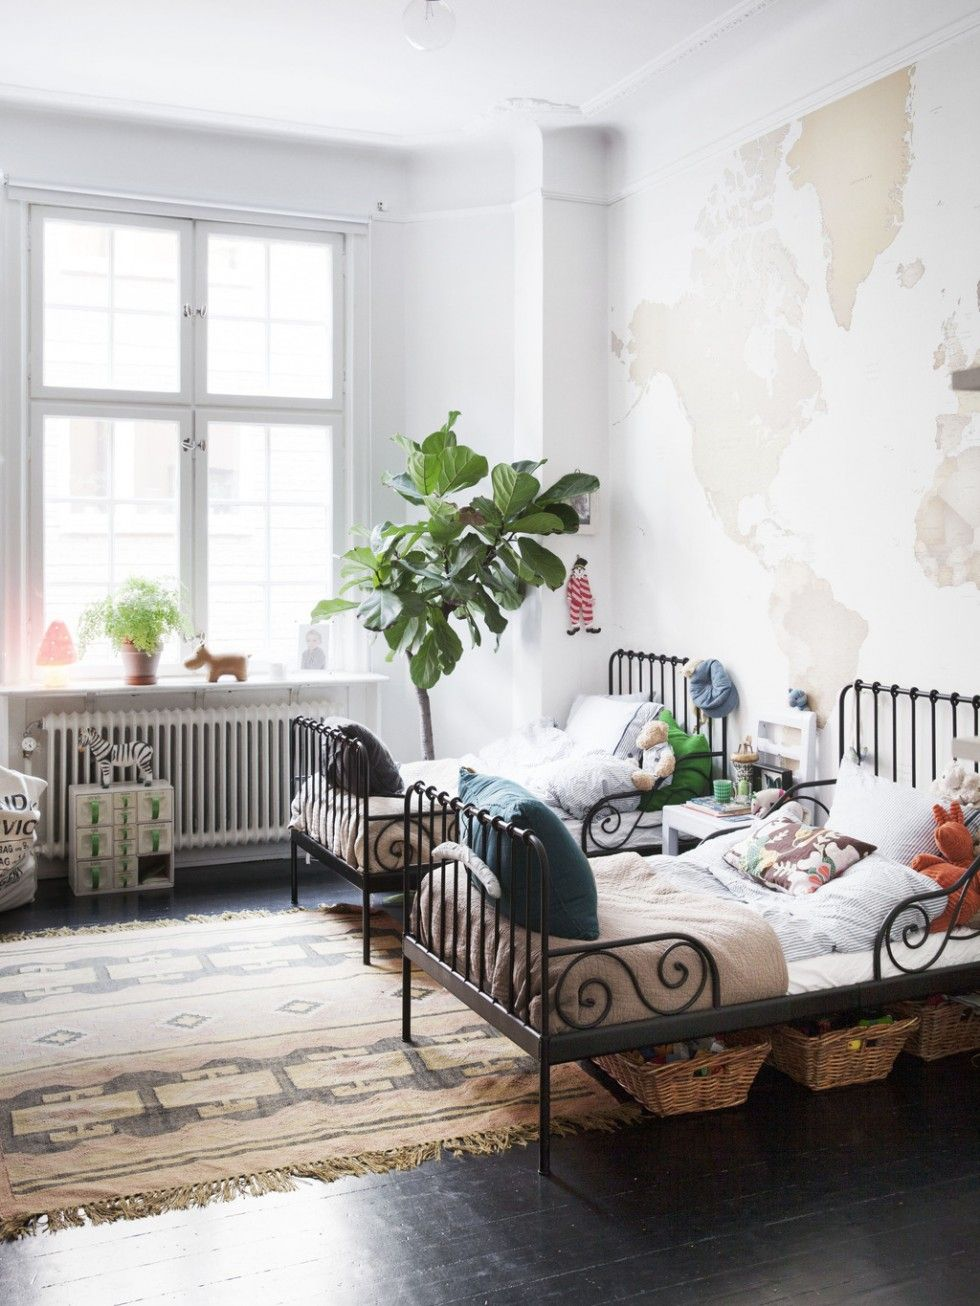 Childrenu0027s Room: World Map Wallpaper, Metal Bed Frames, Radiator For  Warmth, Hardwood. Shared Kids RoomsWall ...